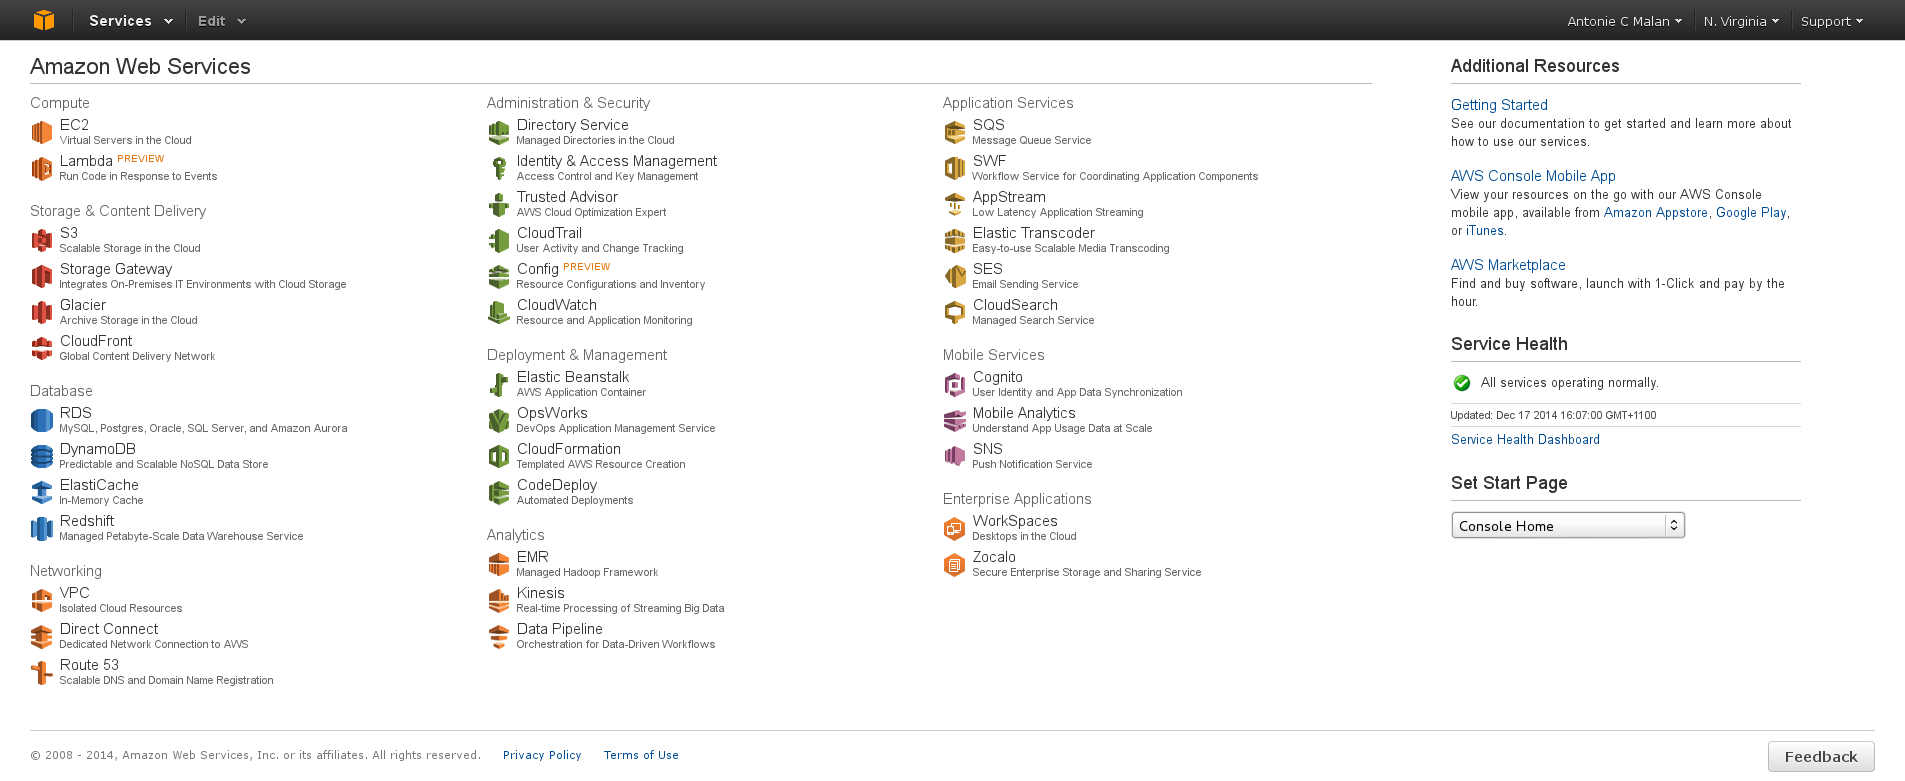 The AWS Management Console